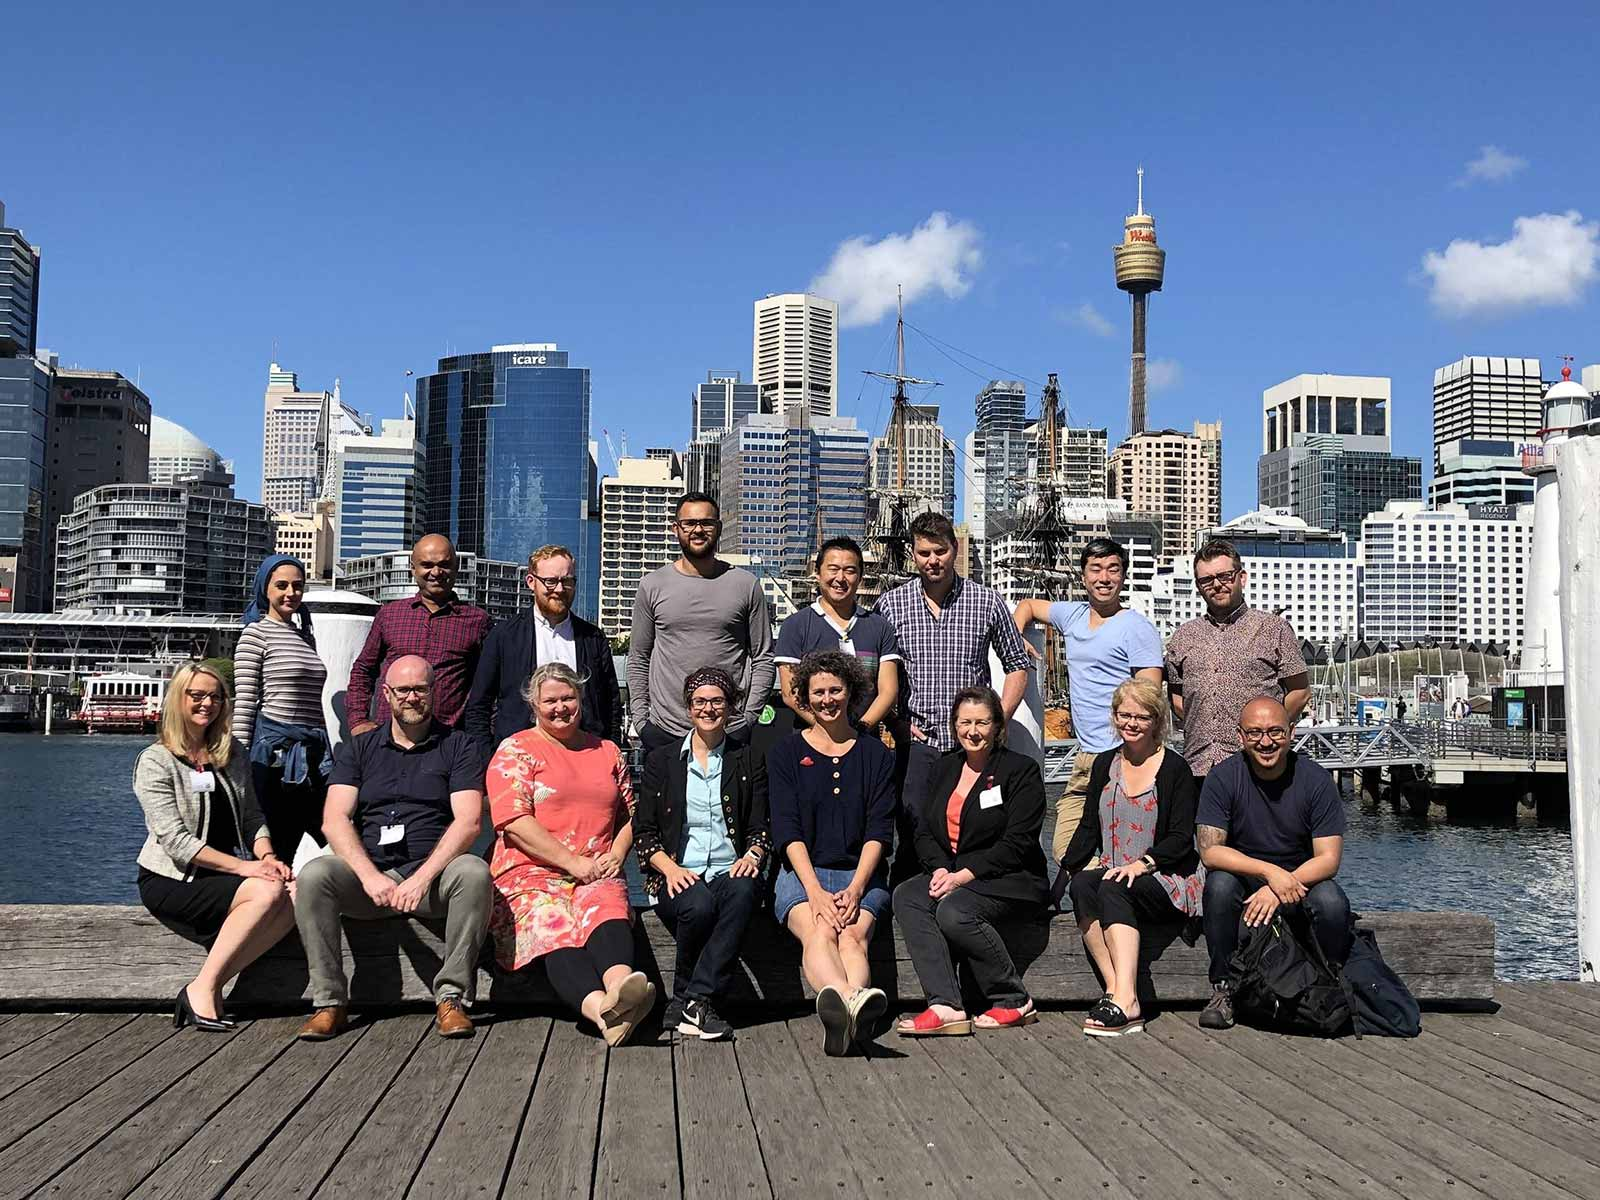 Walkley Foundation introduces John Bergin as project manager for Google News Initiative training program in Australia and NZ